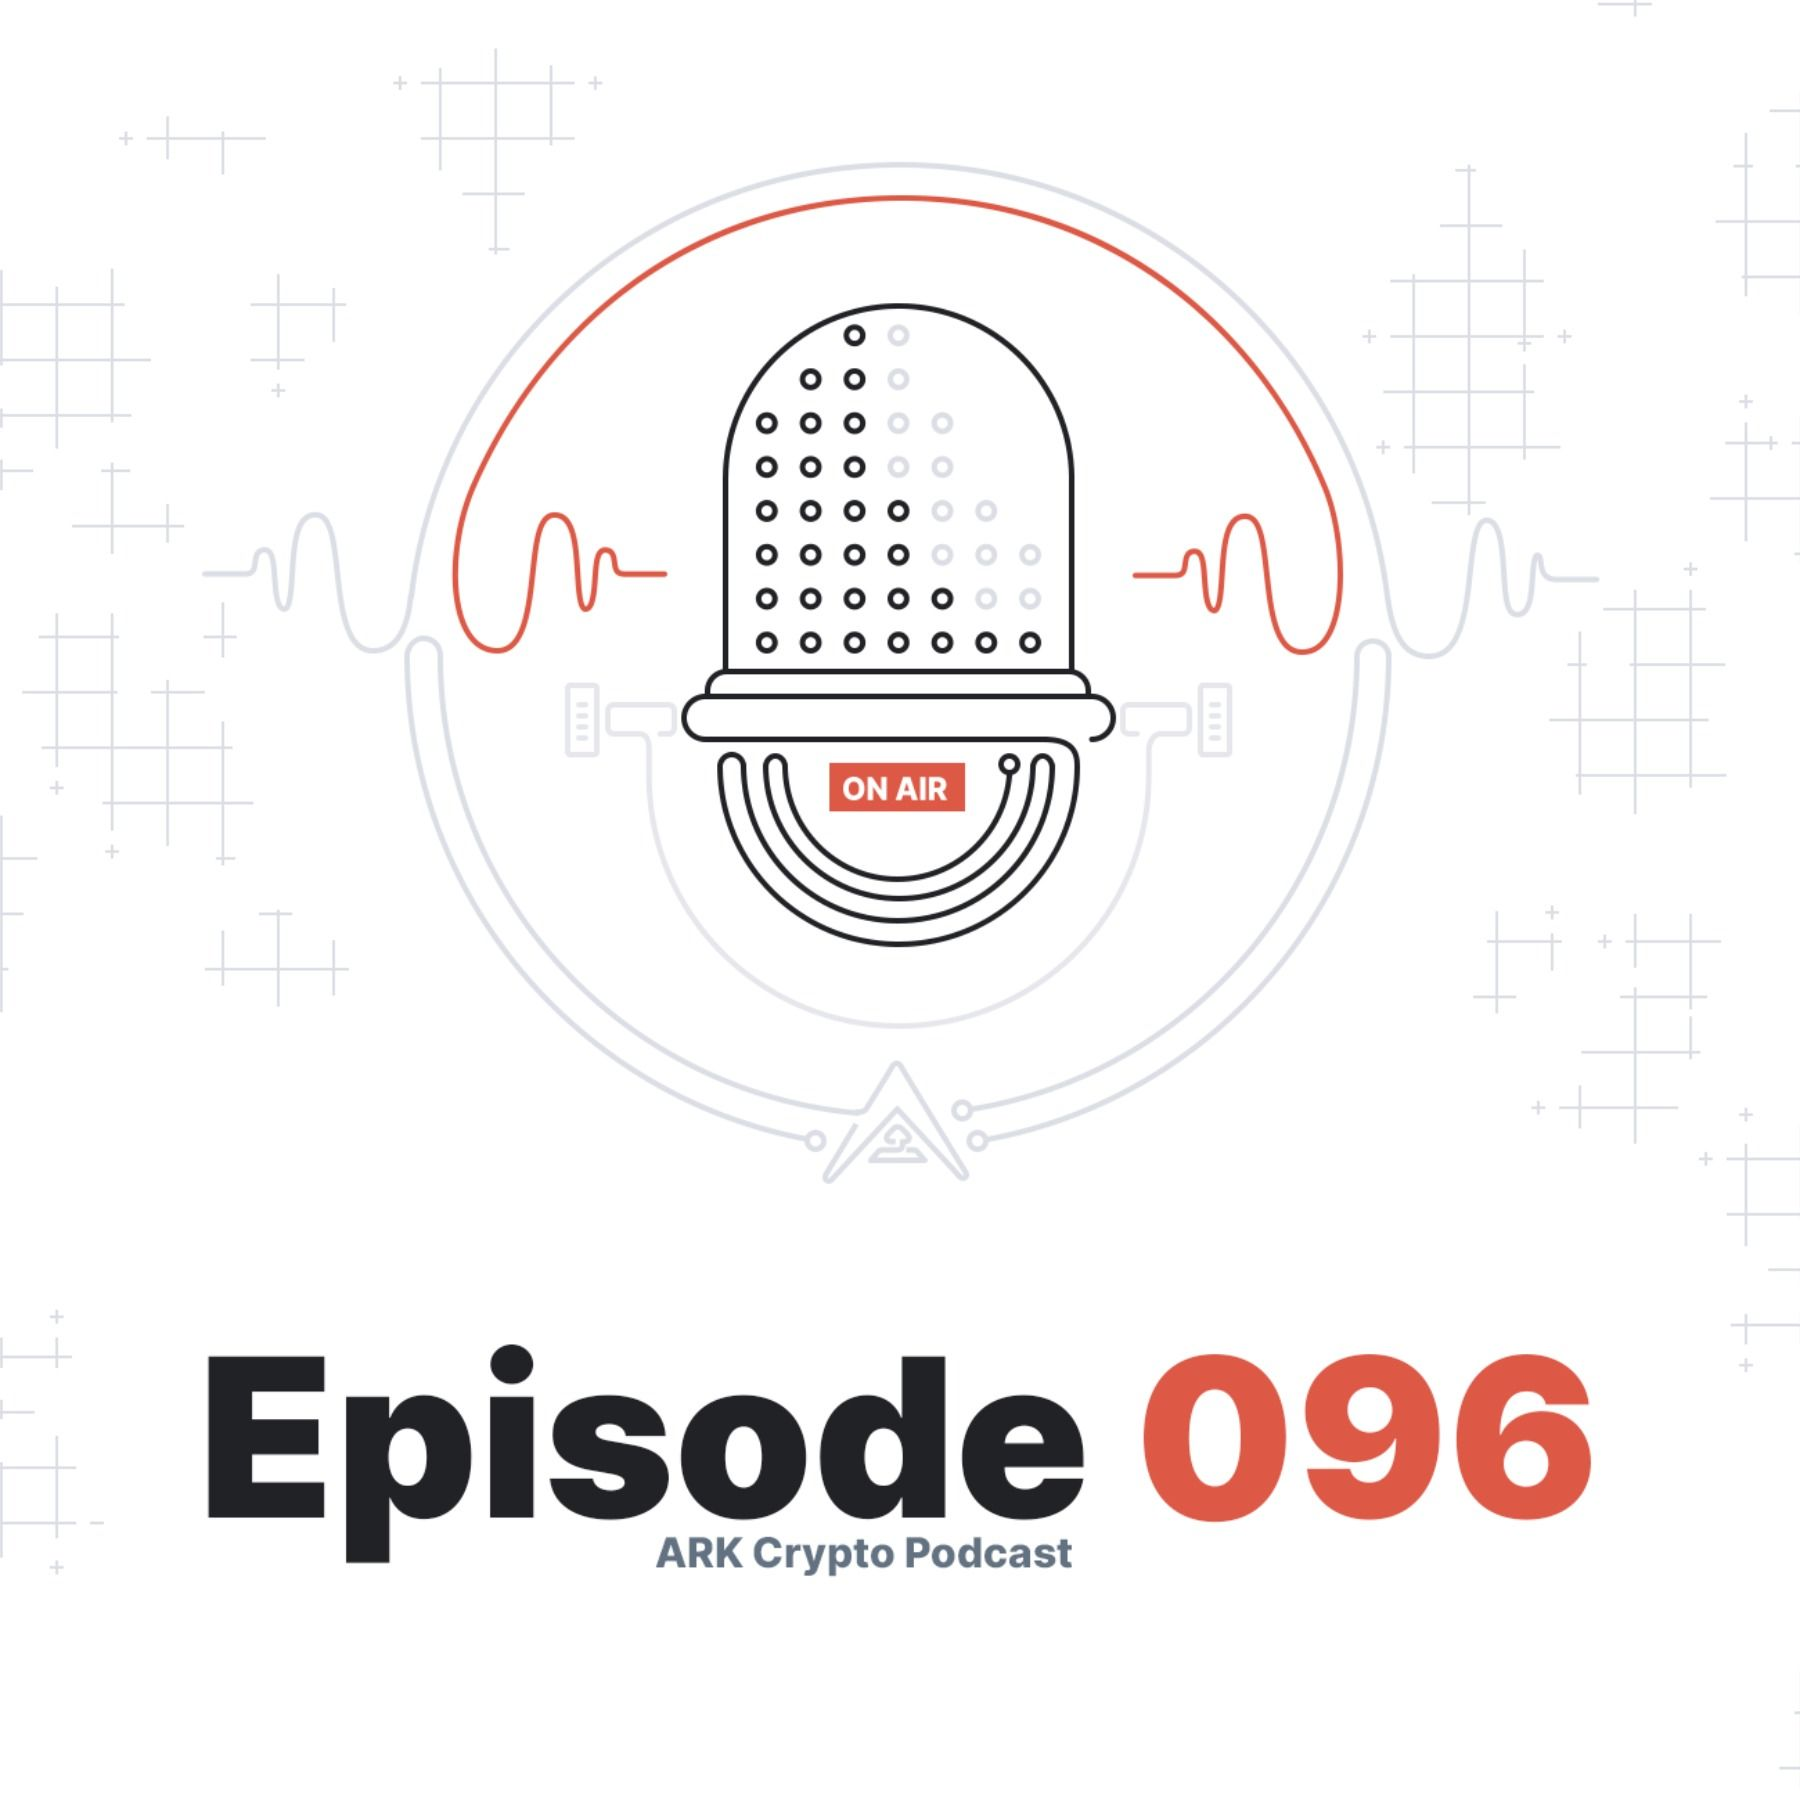 ARK.io Monthly Update September 2020 - ARK Crypto Podcast #096